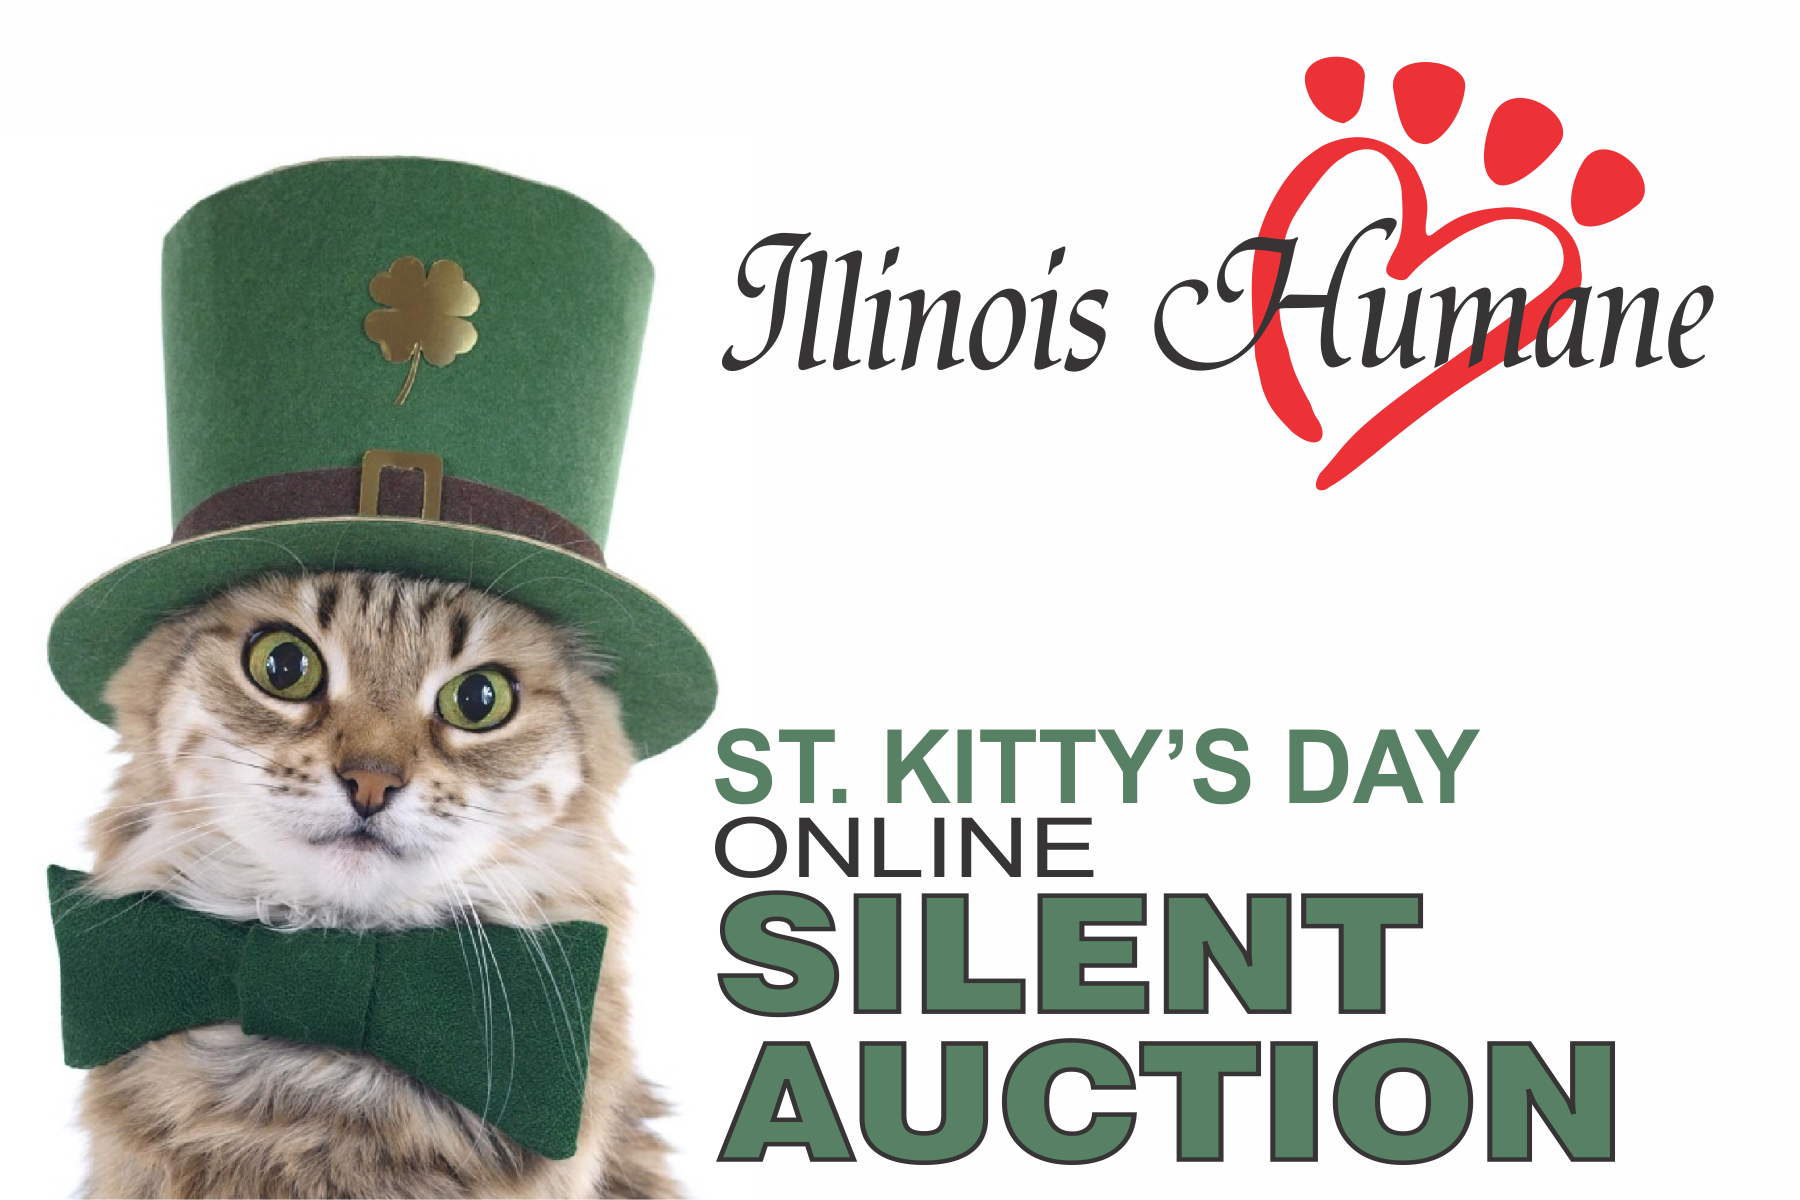 St. Kitty's Day Online Auction